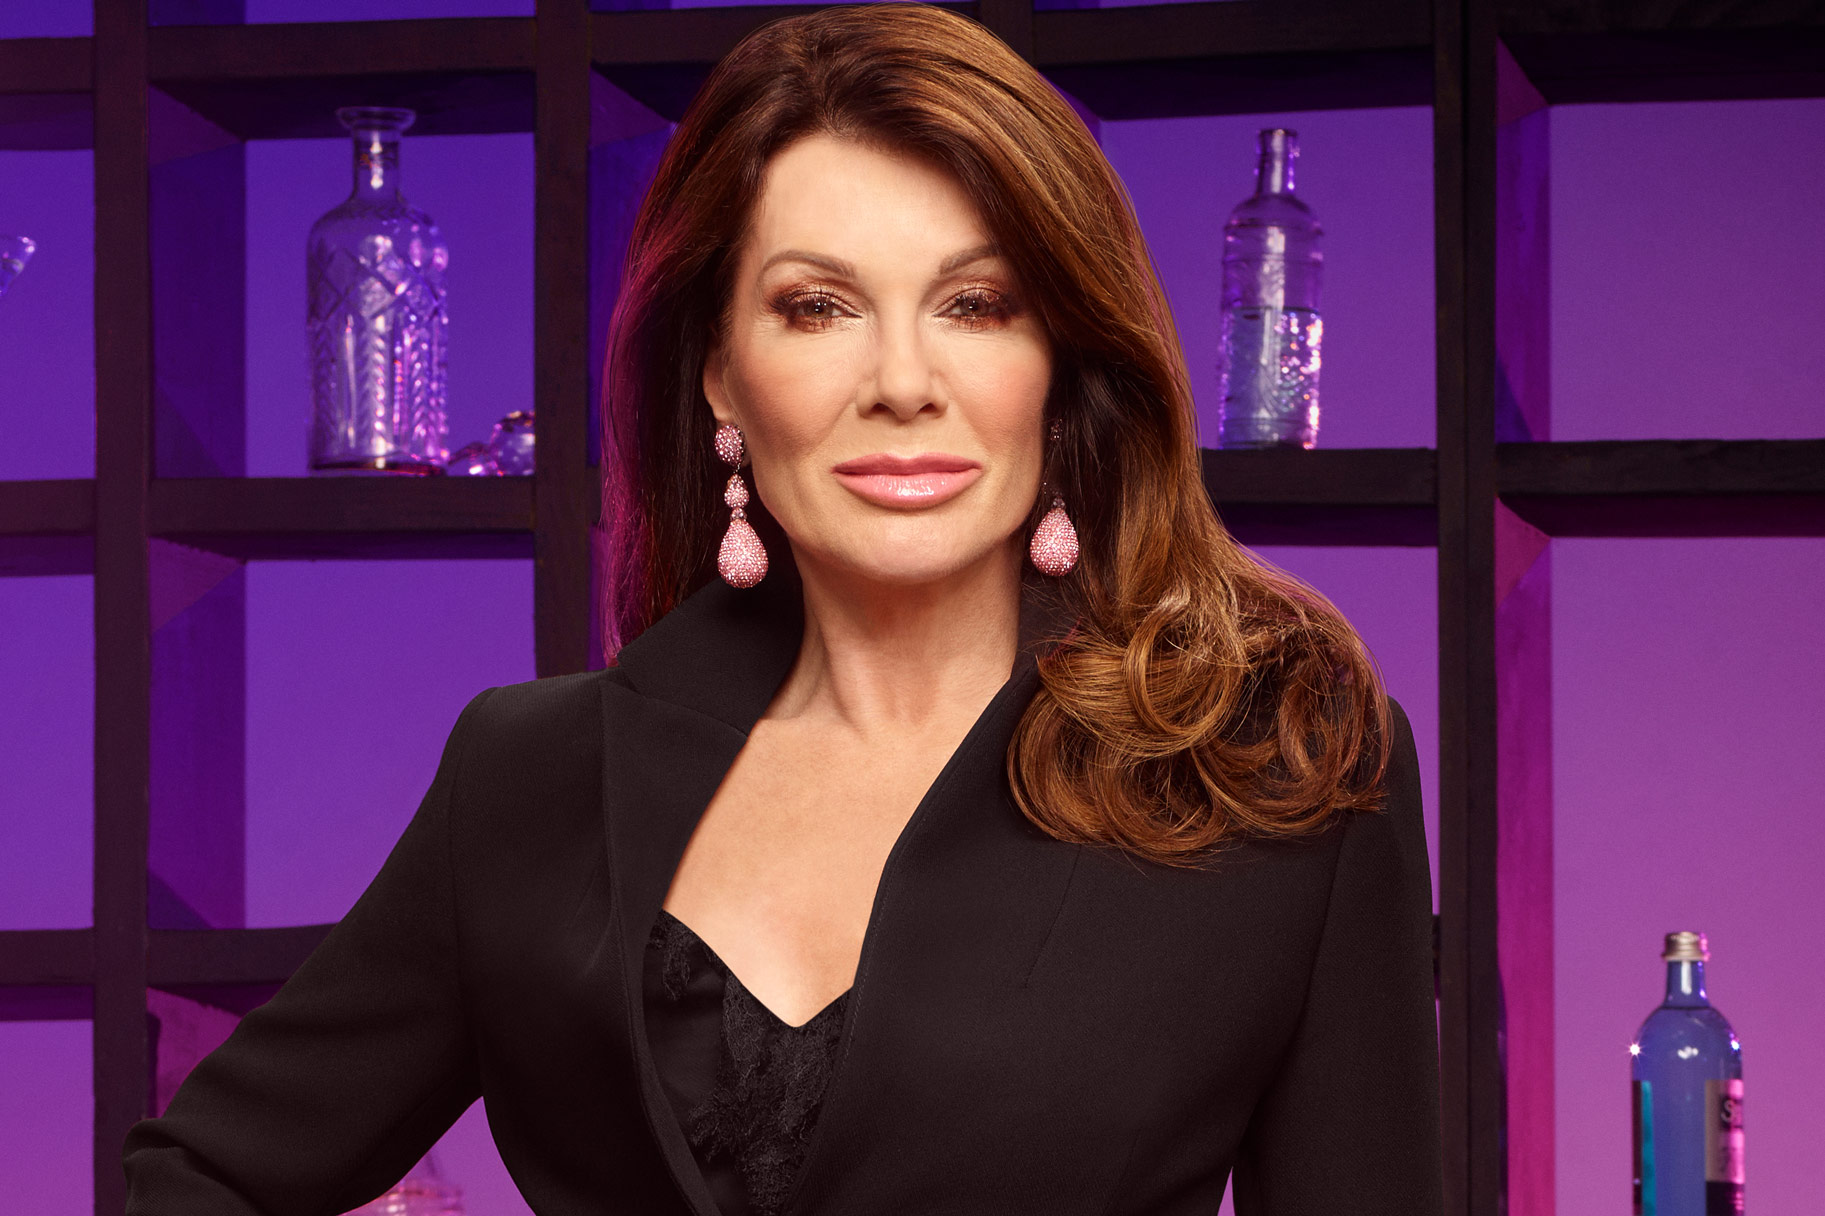 Lisa Vanderpump Addresses Vpr Cast